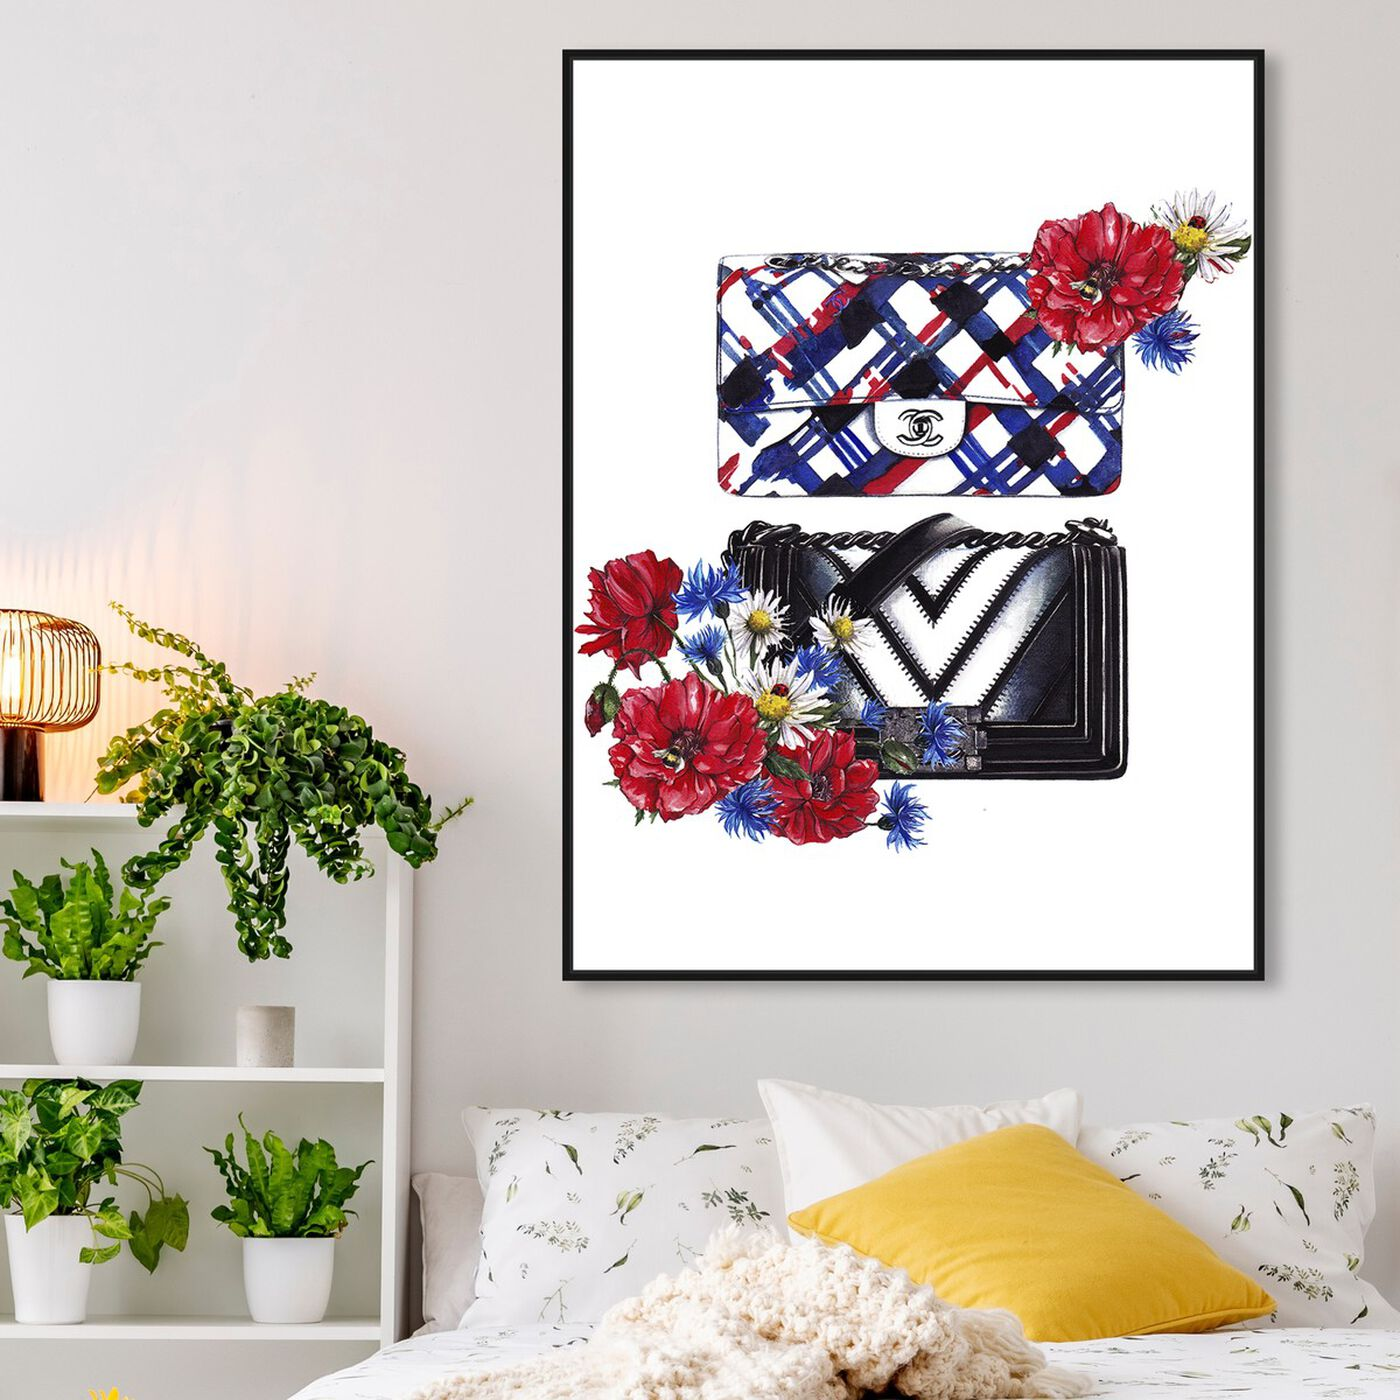 Hanging view of Doll Memories - Bags Floral featuring fashion and glam and handbags art.